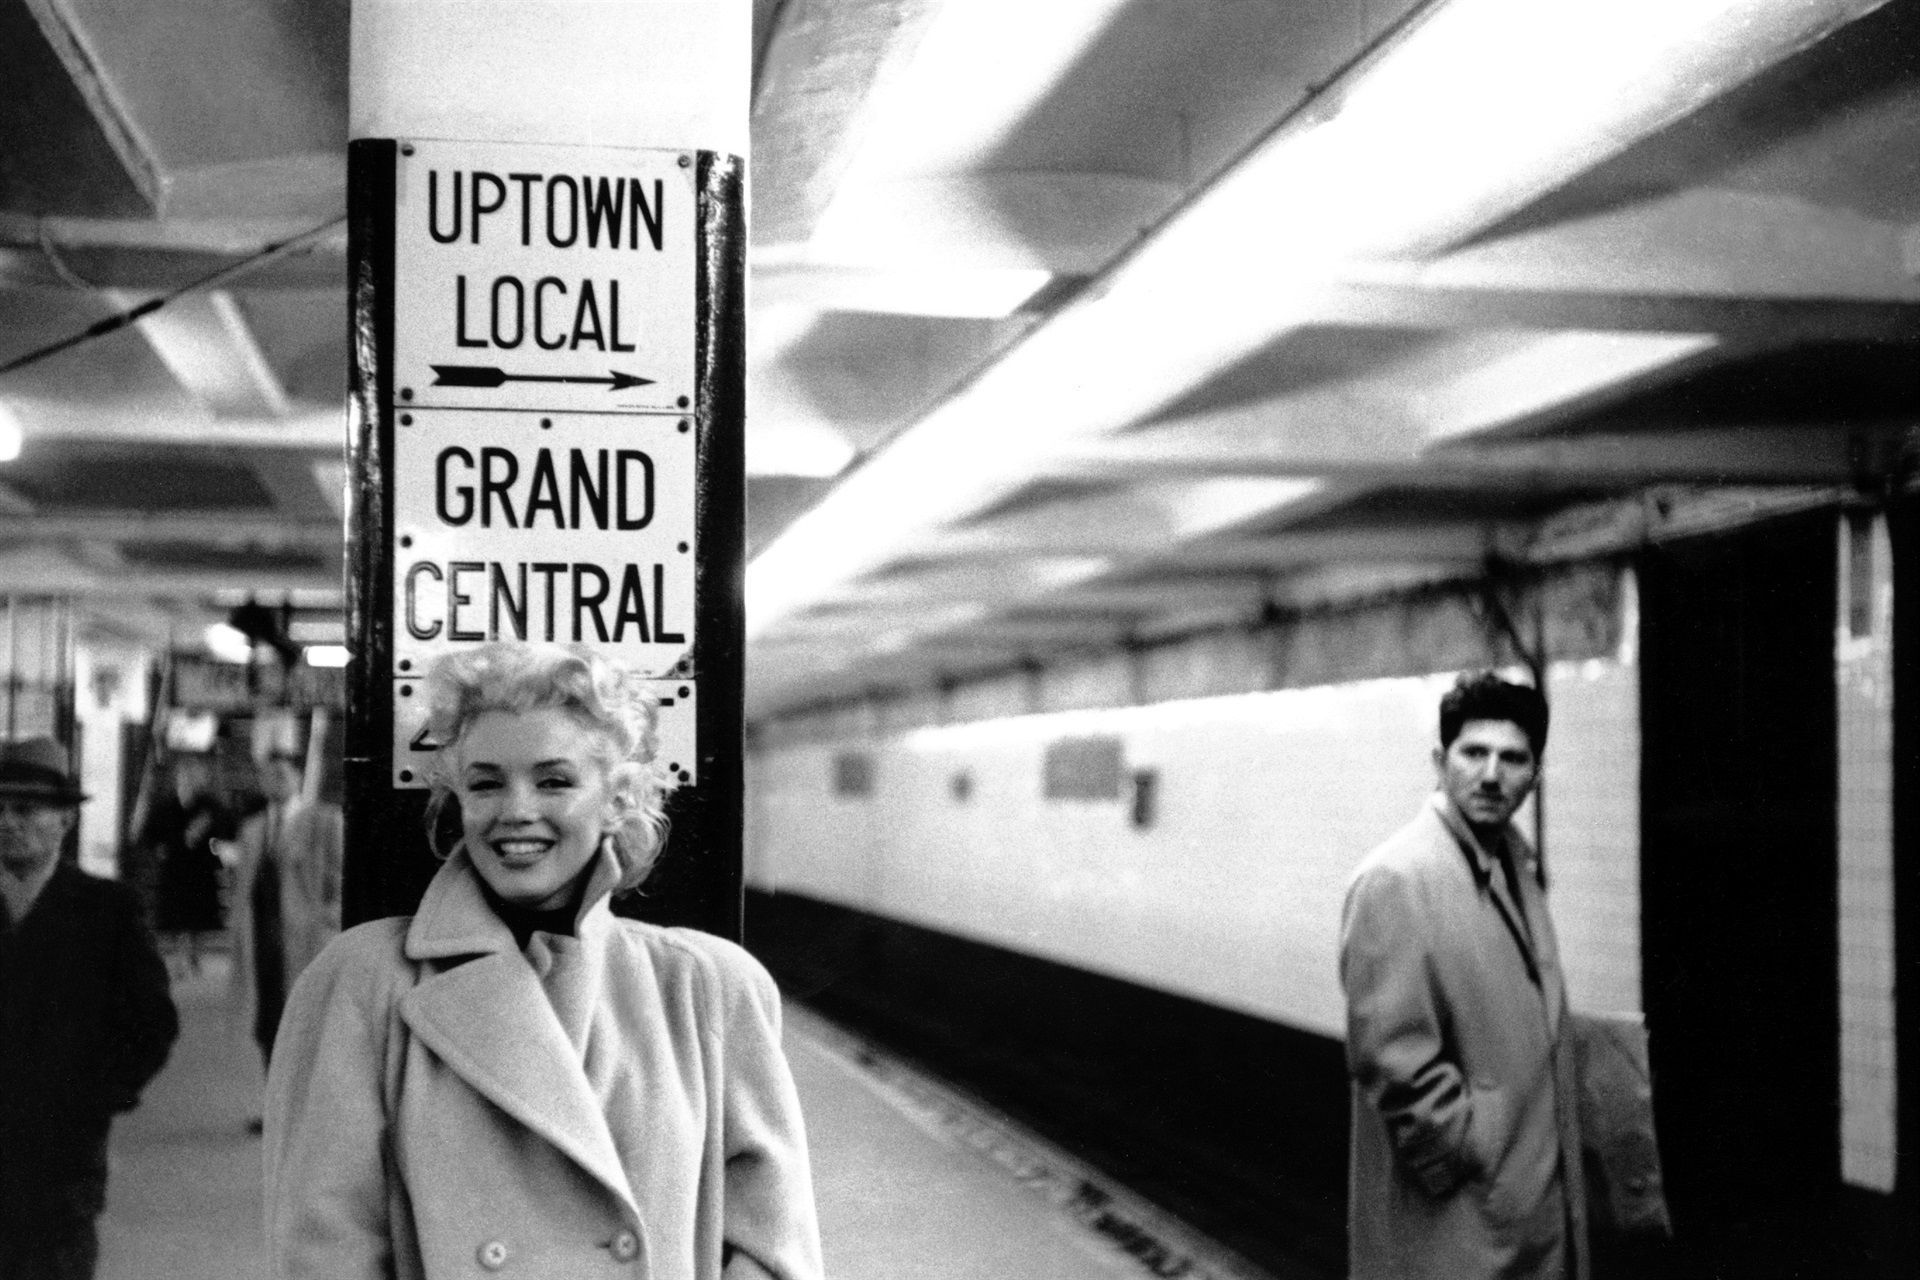 Vintage Celebrities at Grand Central - Celebrities at Grand